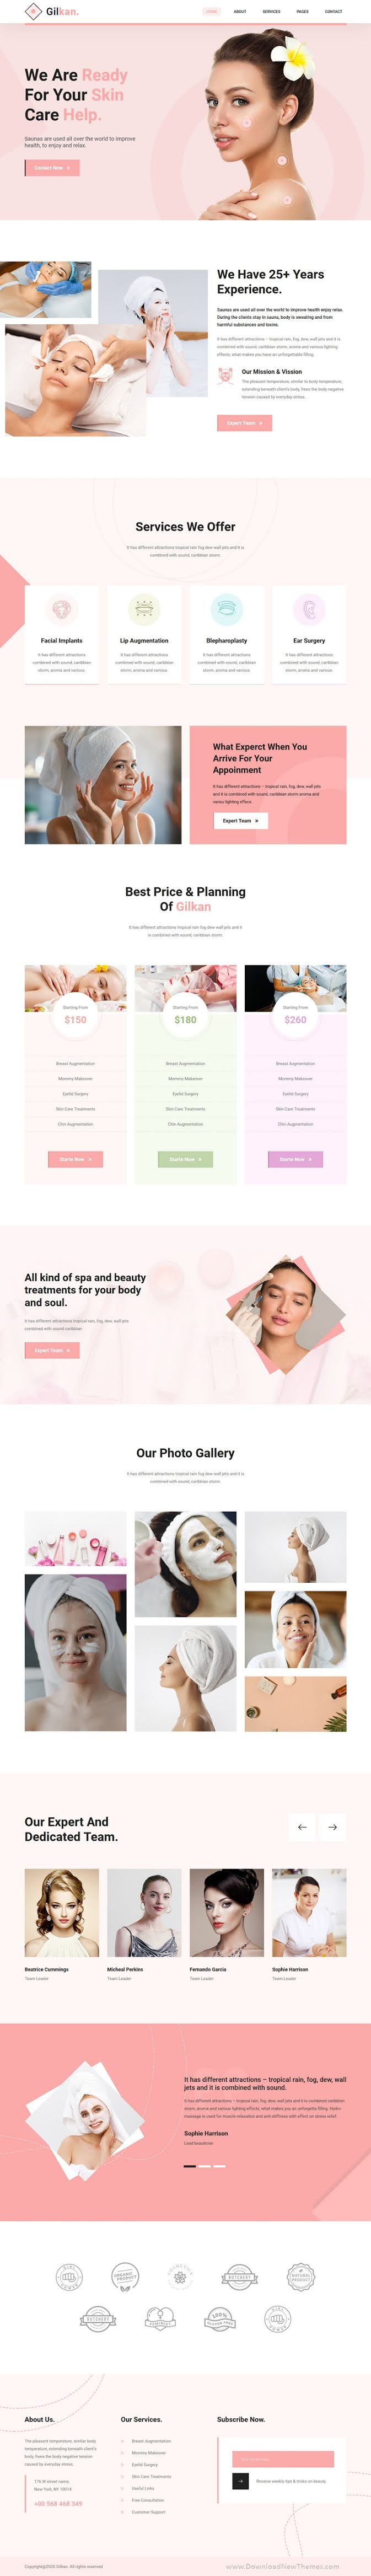 Dermatology and Skin Care HTML5 Template